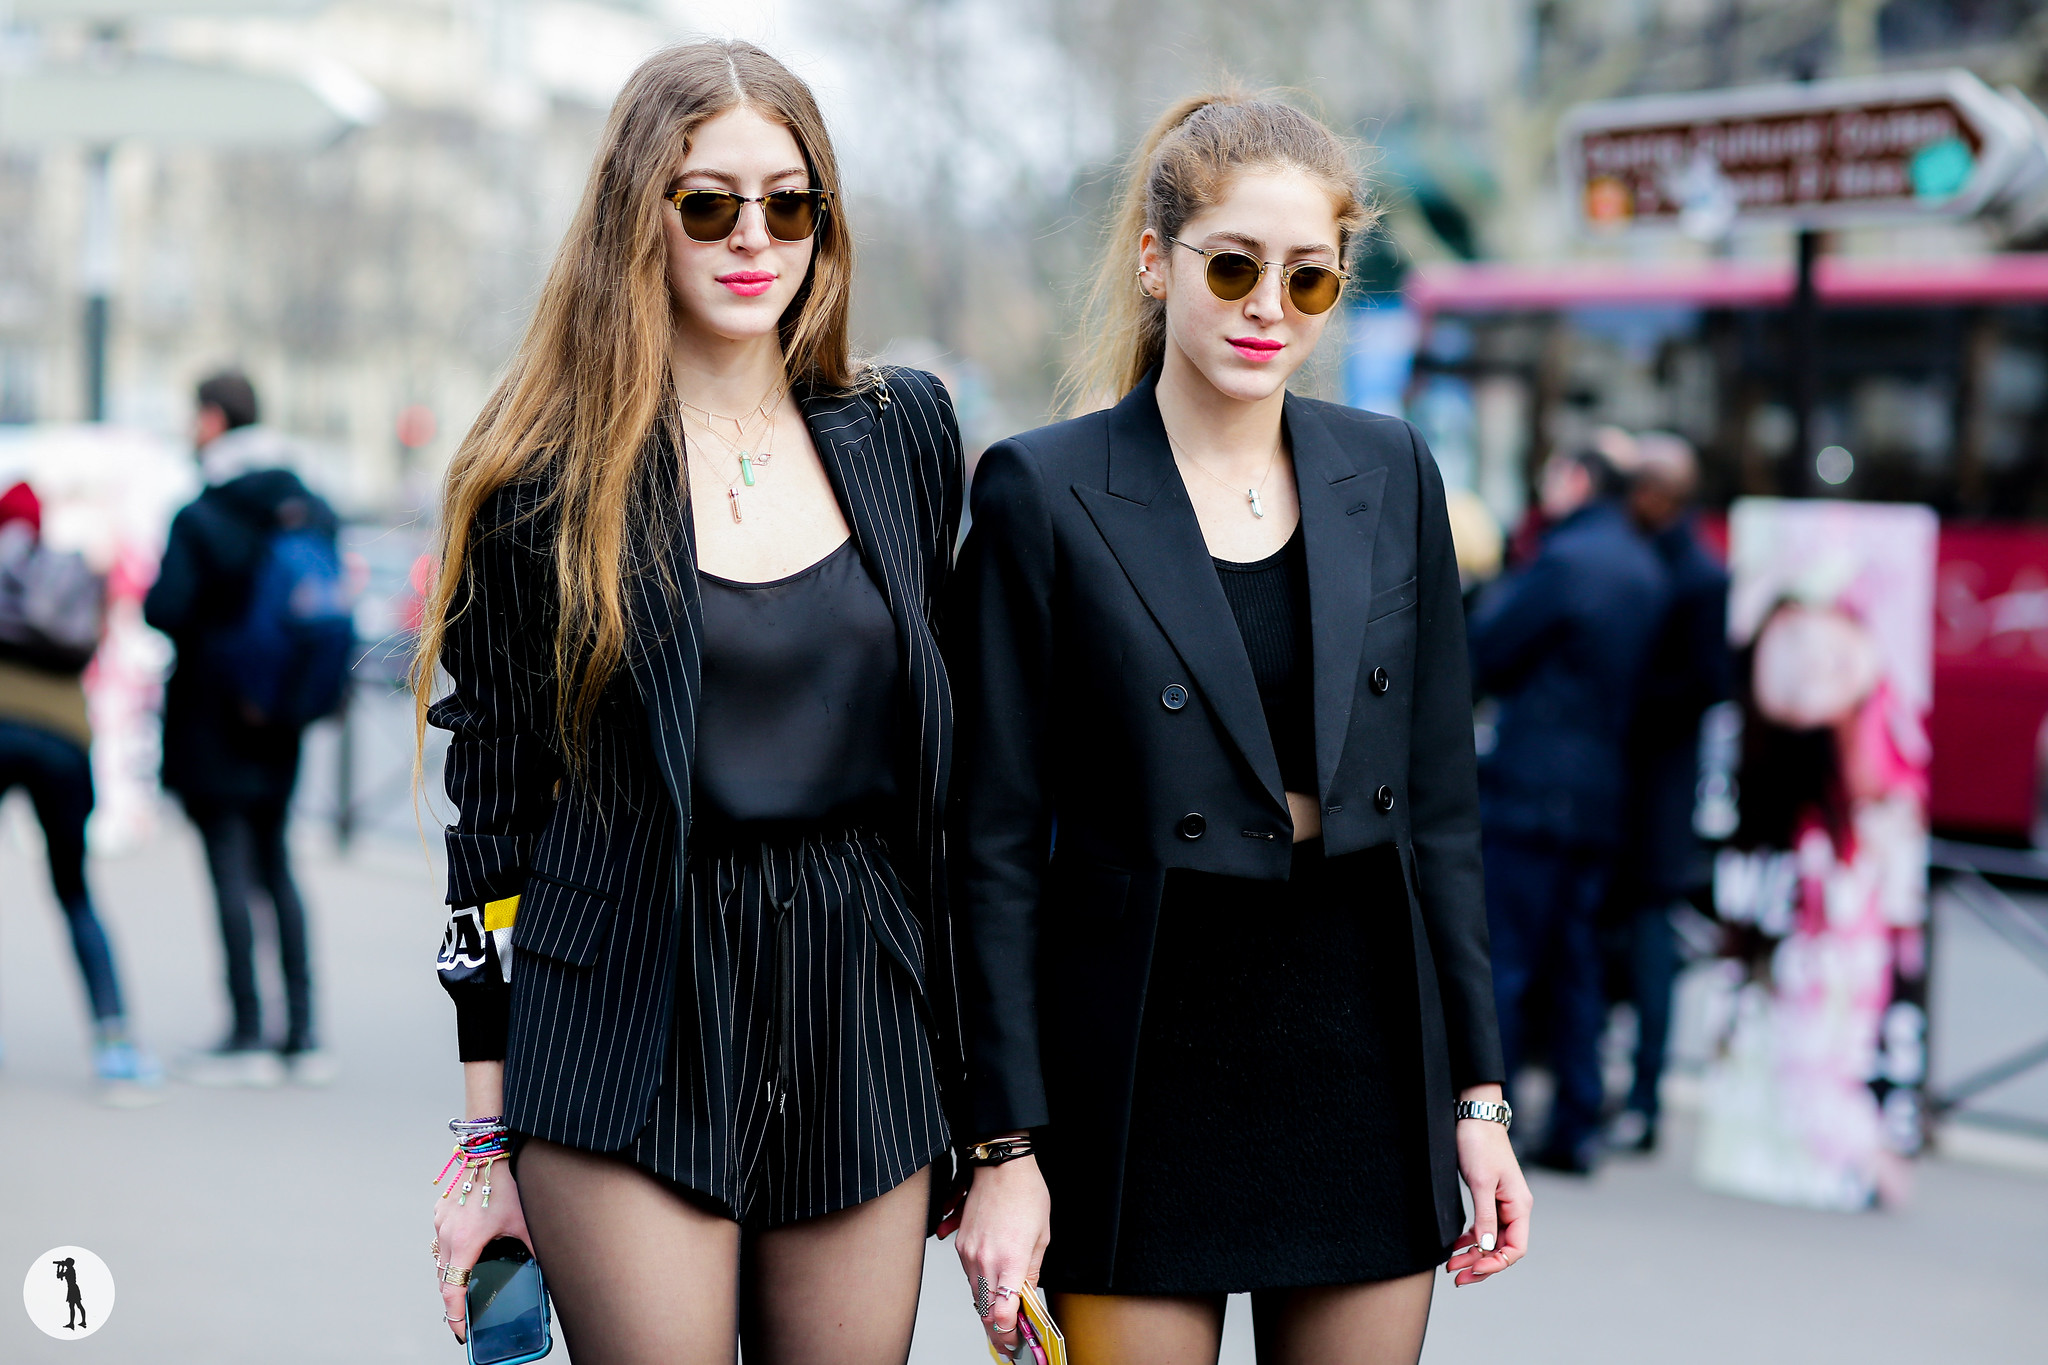 Haya and Sama Abu Khadra - - Paris Fashion Week RDT FW15-16 (1)